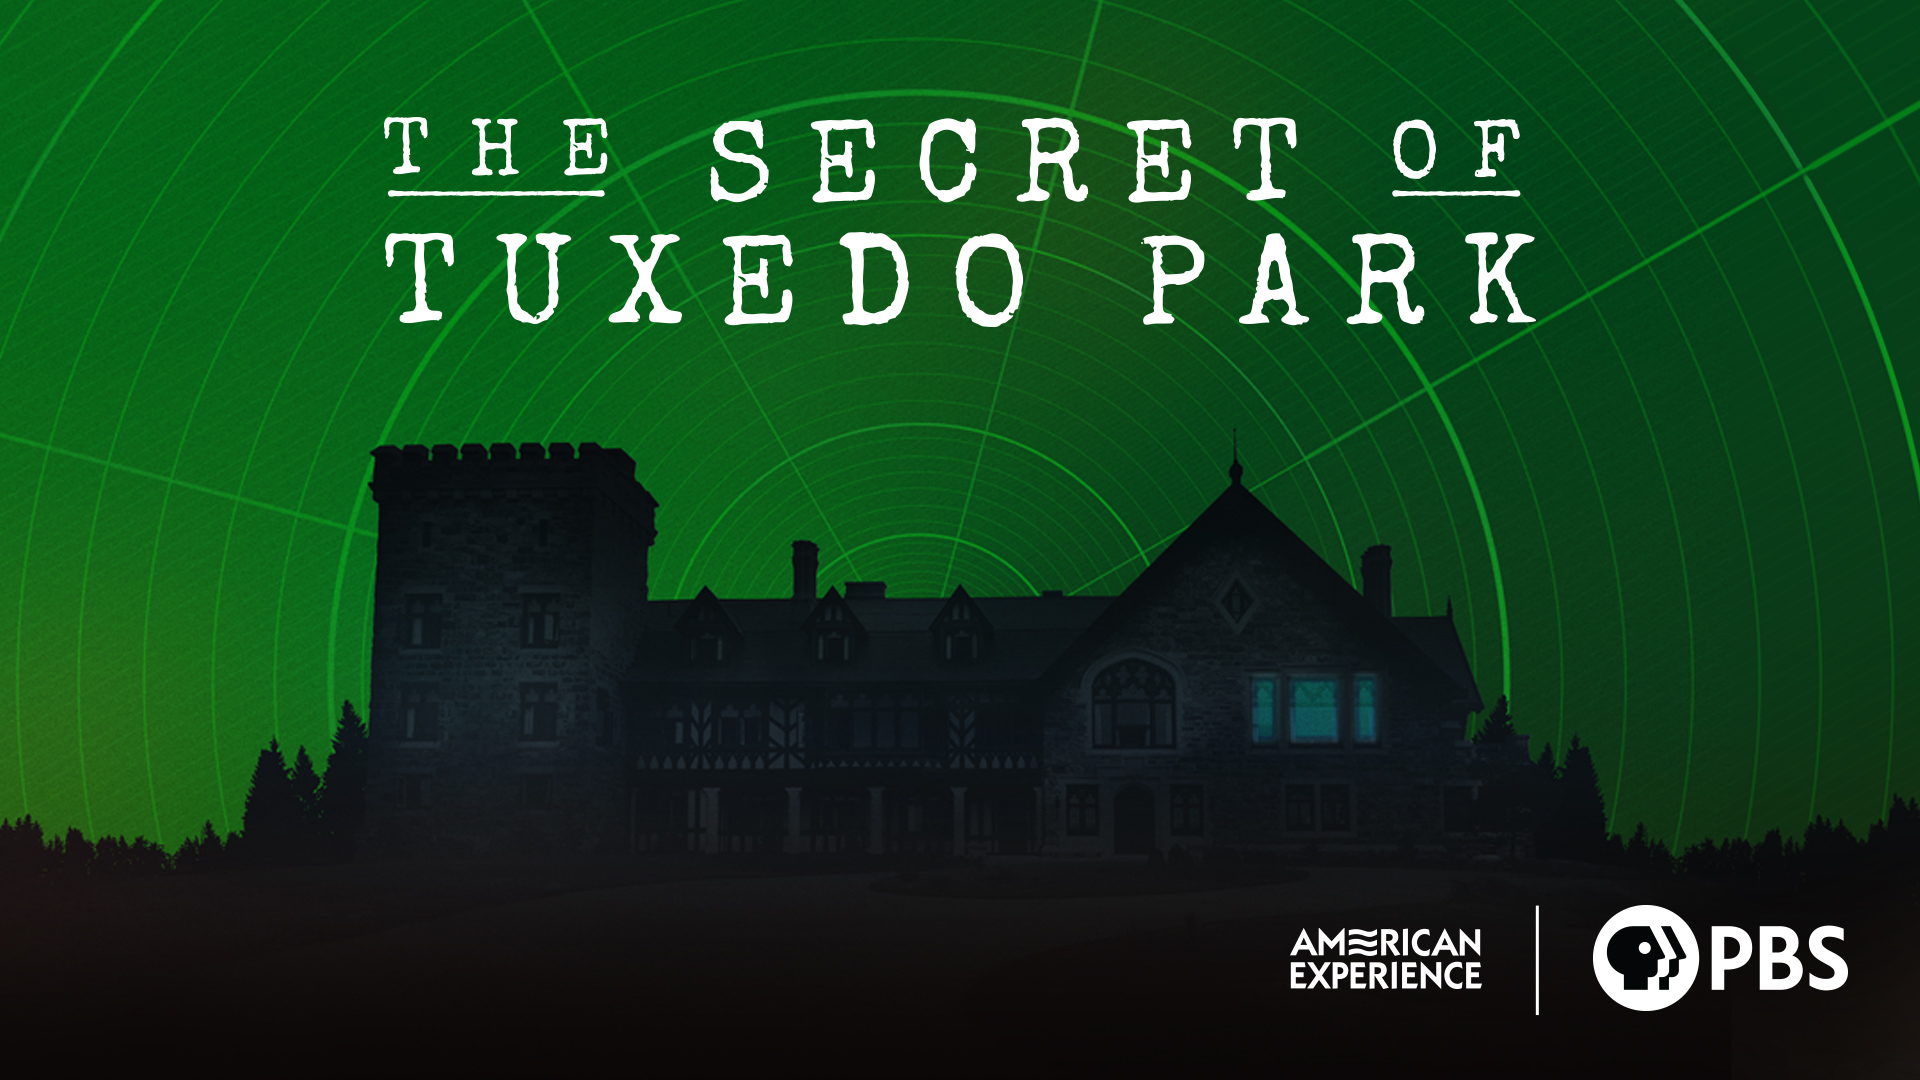 American Experience: The Secret of Tuxedo Park